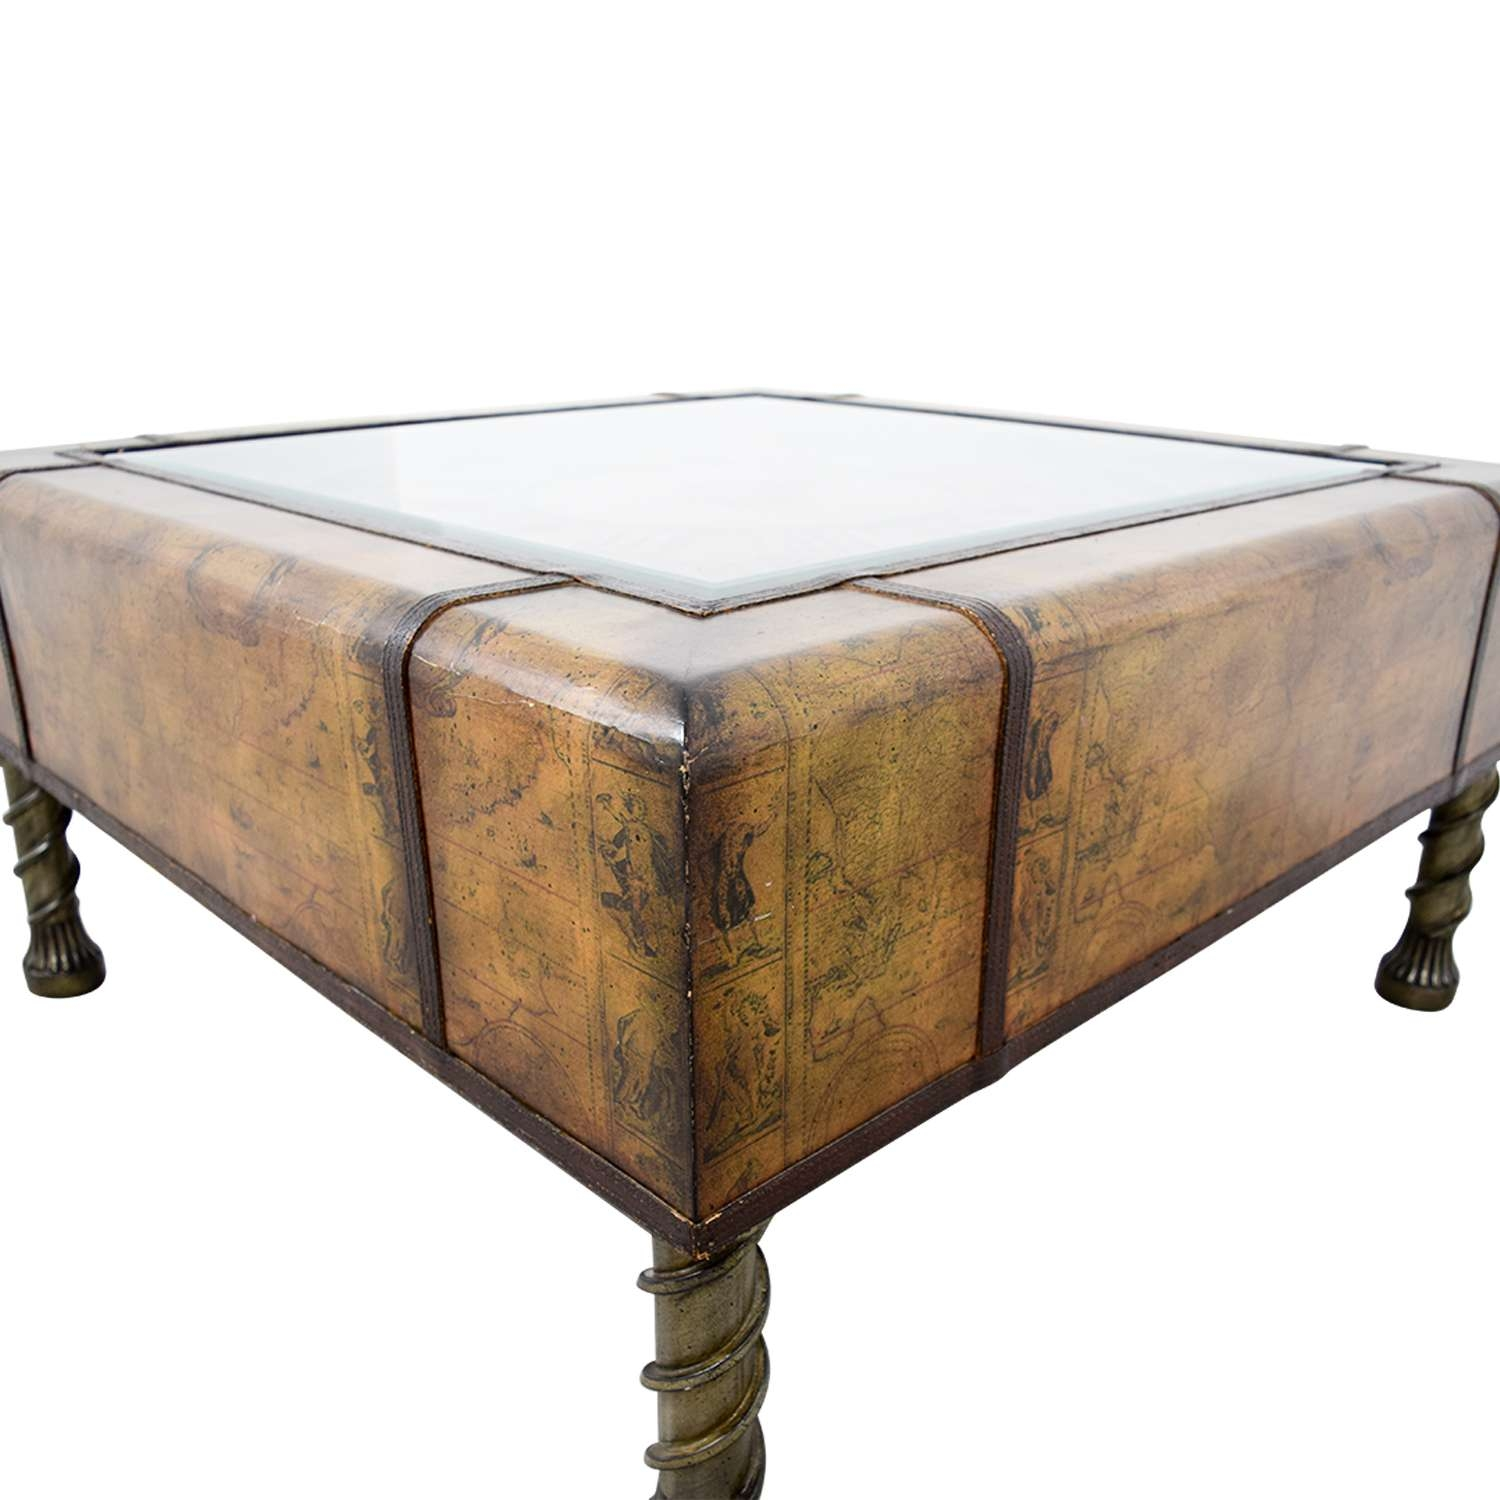 [%Latest Coffee Tables With Clock Top In 87% Off – Glass Clock Top Coffee Table / Tables|87% Off – Glass Clock Top Coffee Table / Tables Throughout Latest Coffee Tables With Clock Top%] (View 1 of 20)